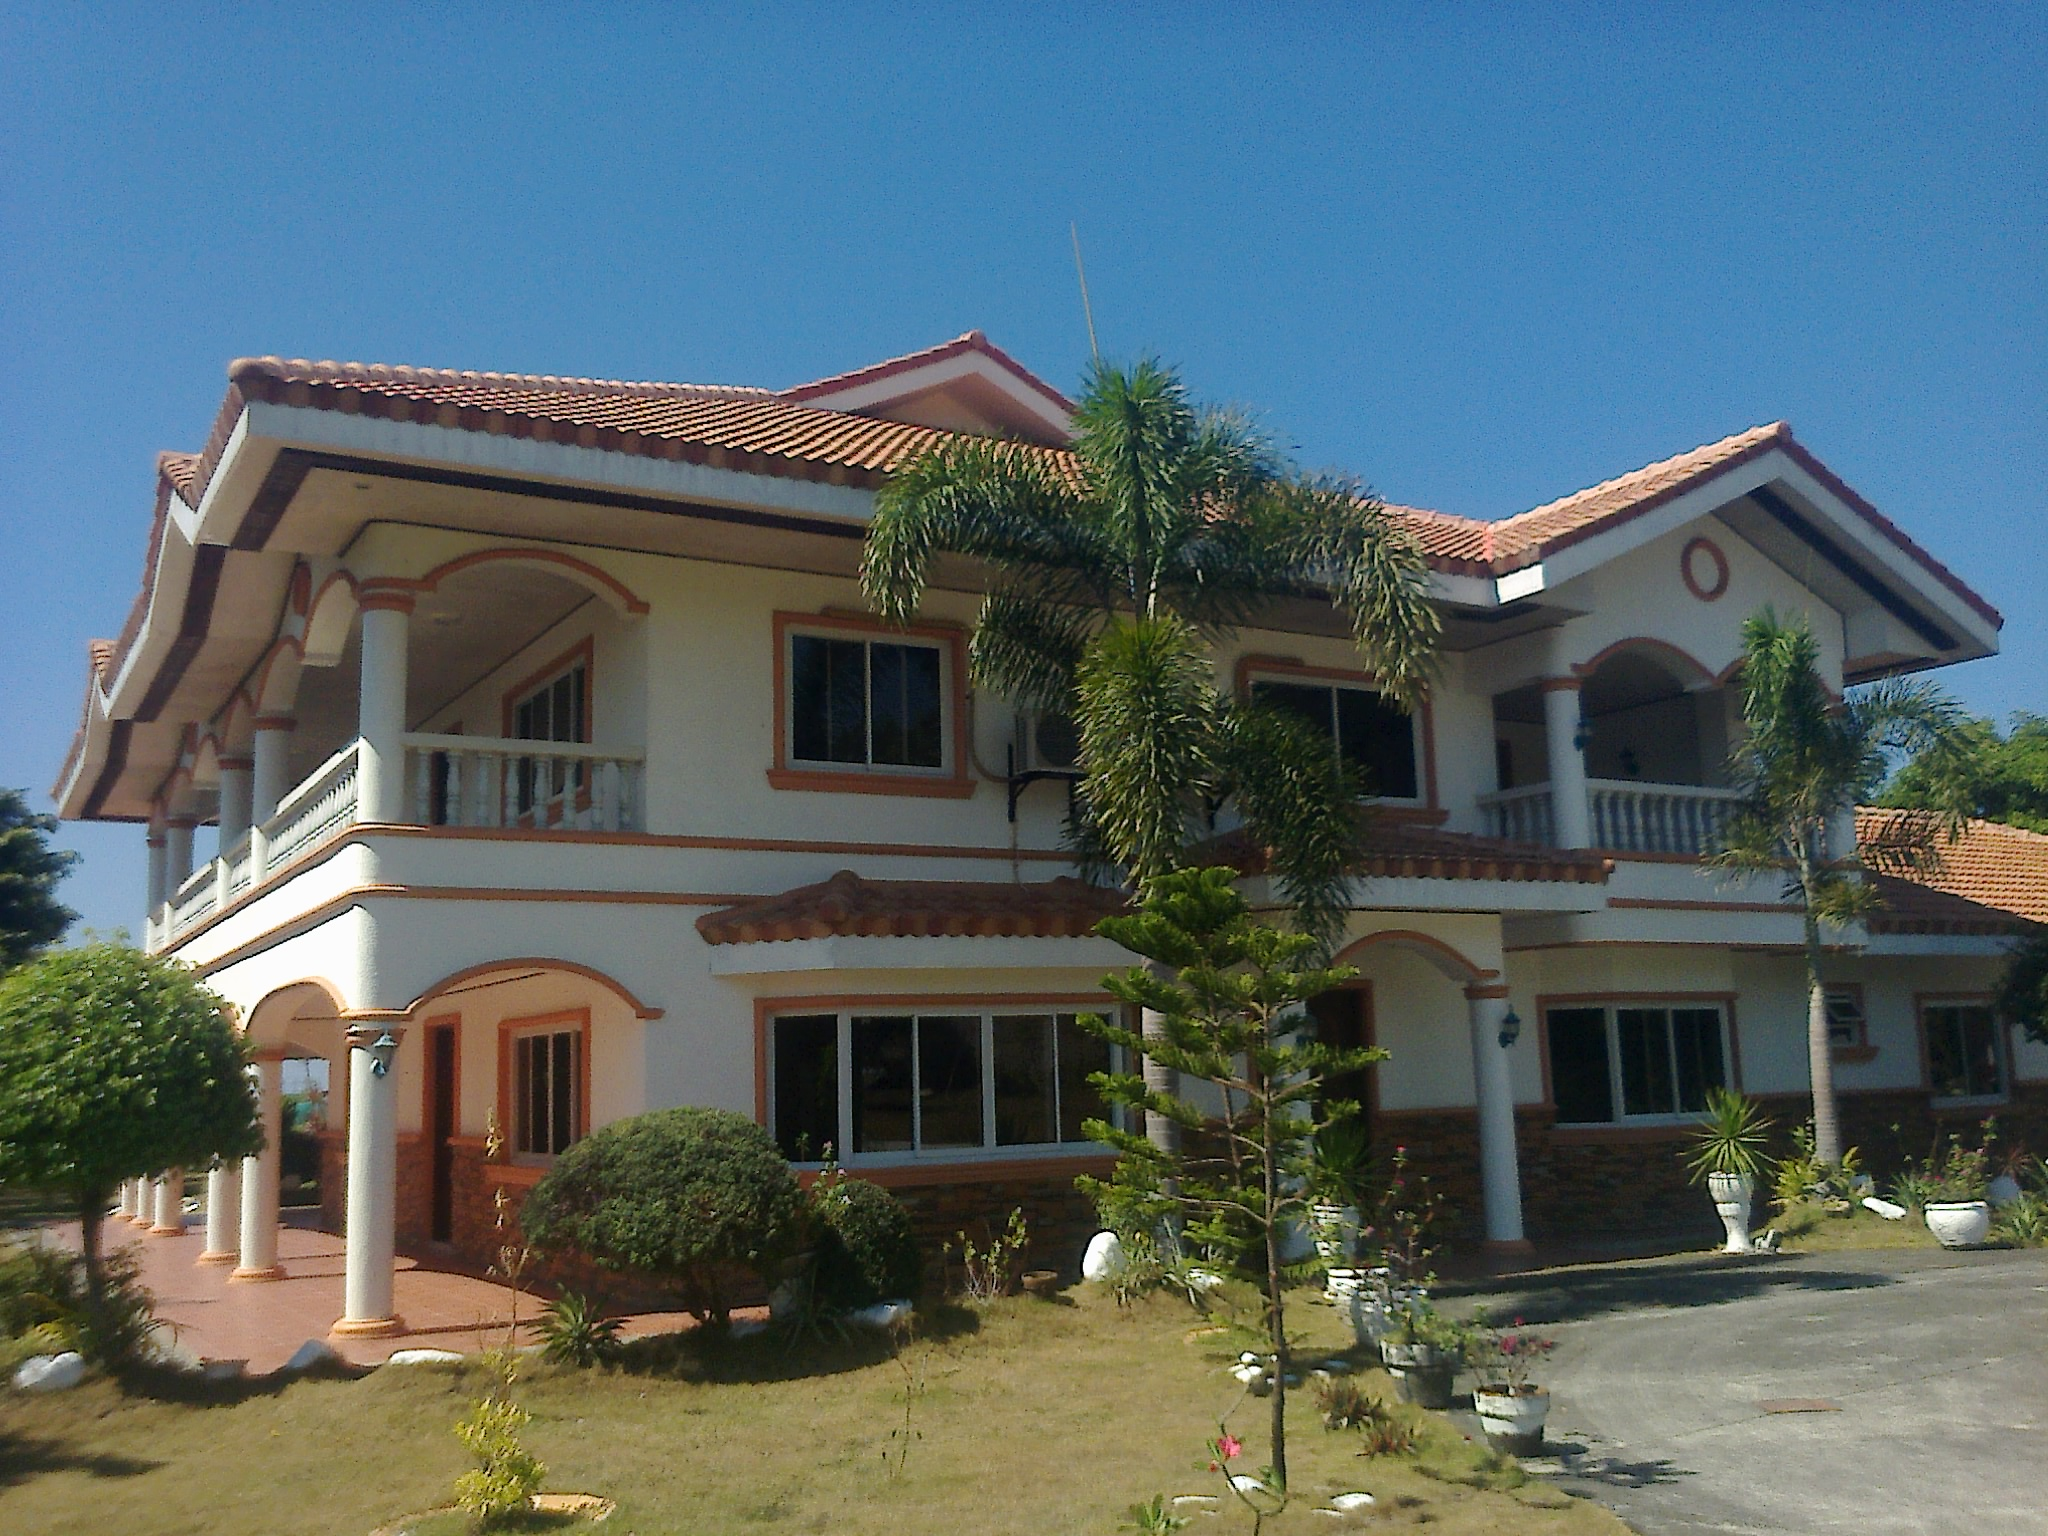 Mansion beach house and lot for sale in bacnotan la union ilocos philippines sold